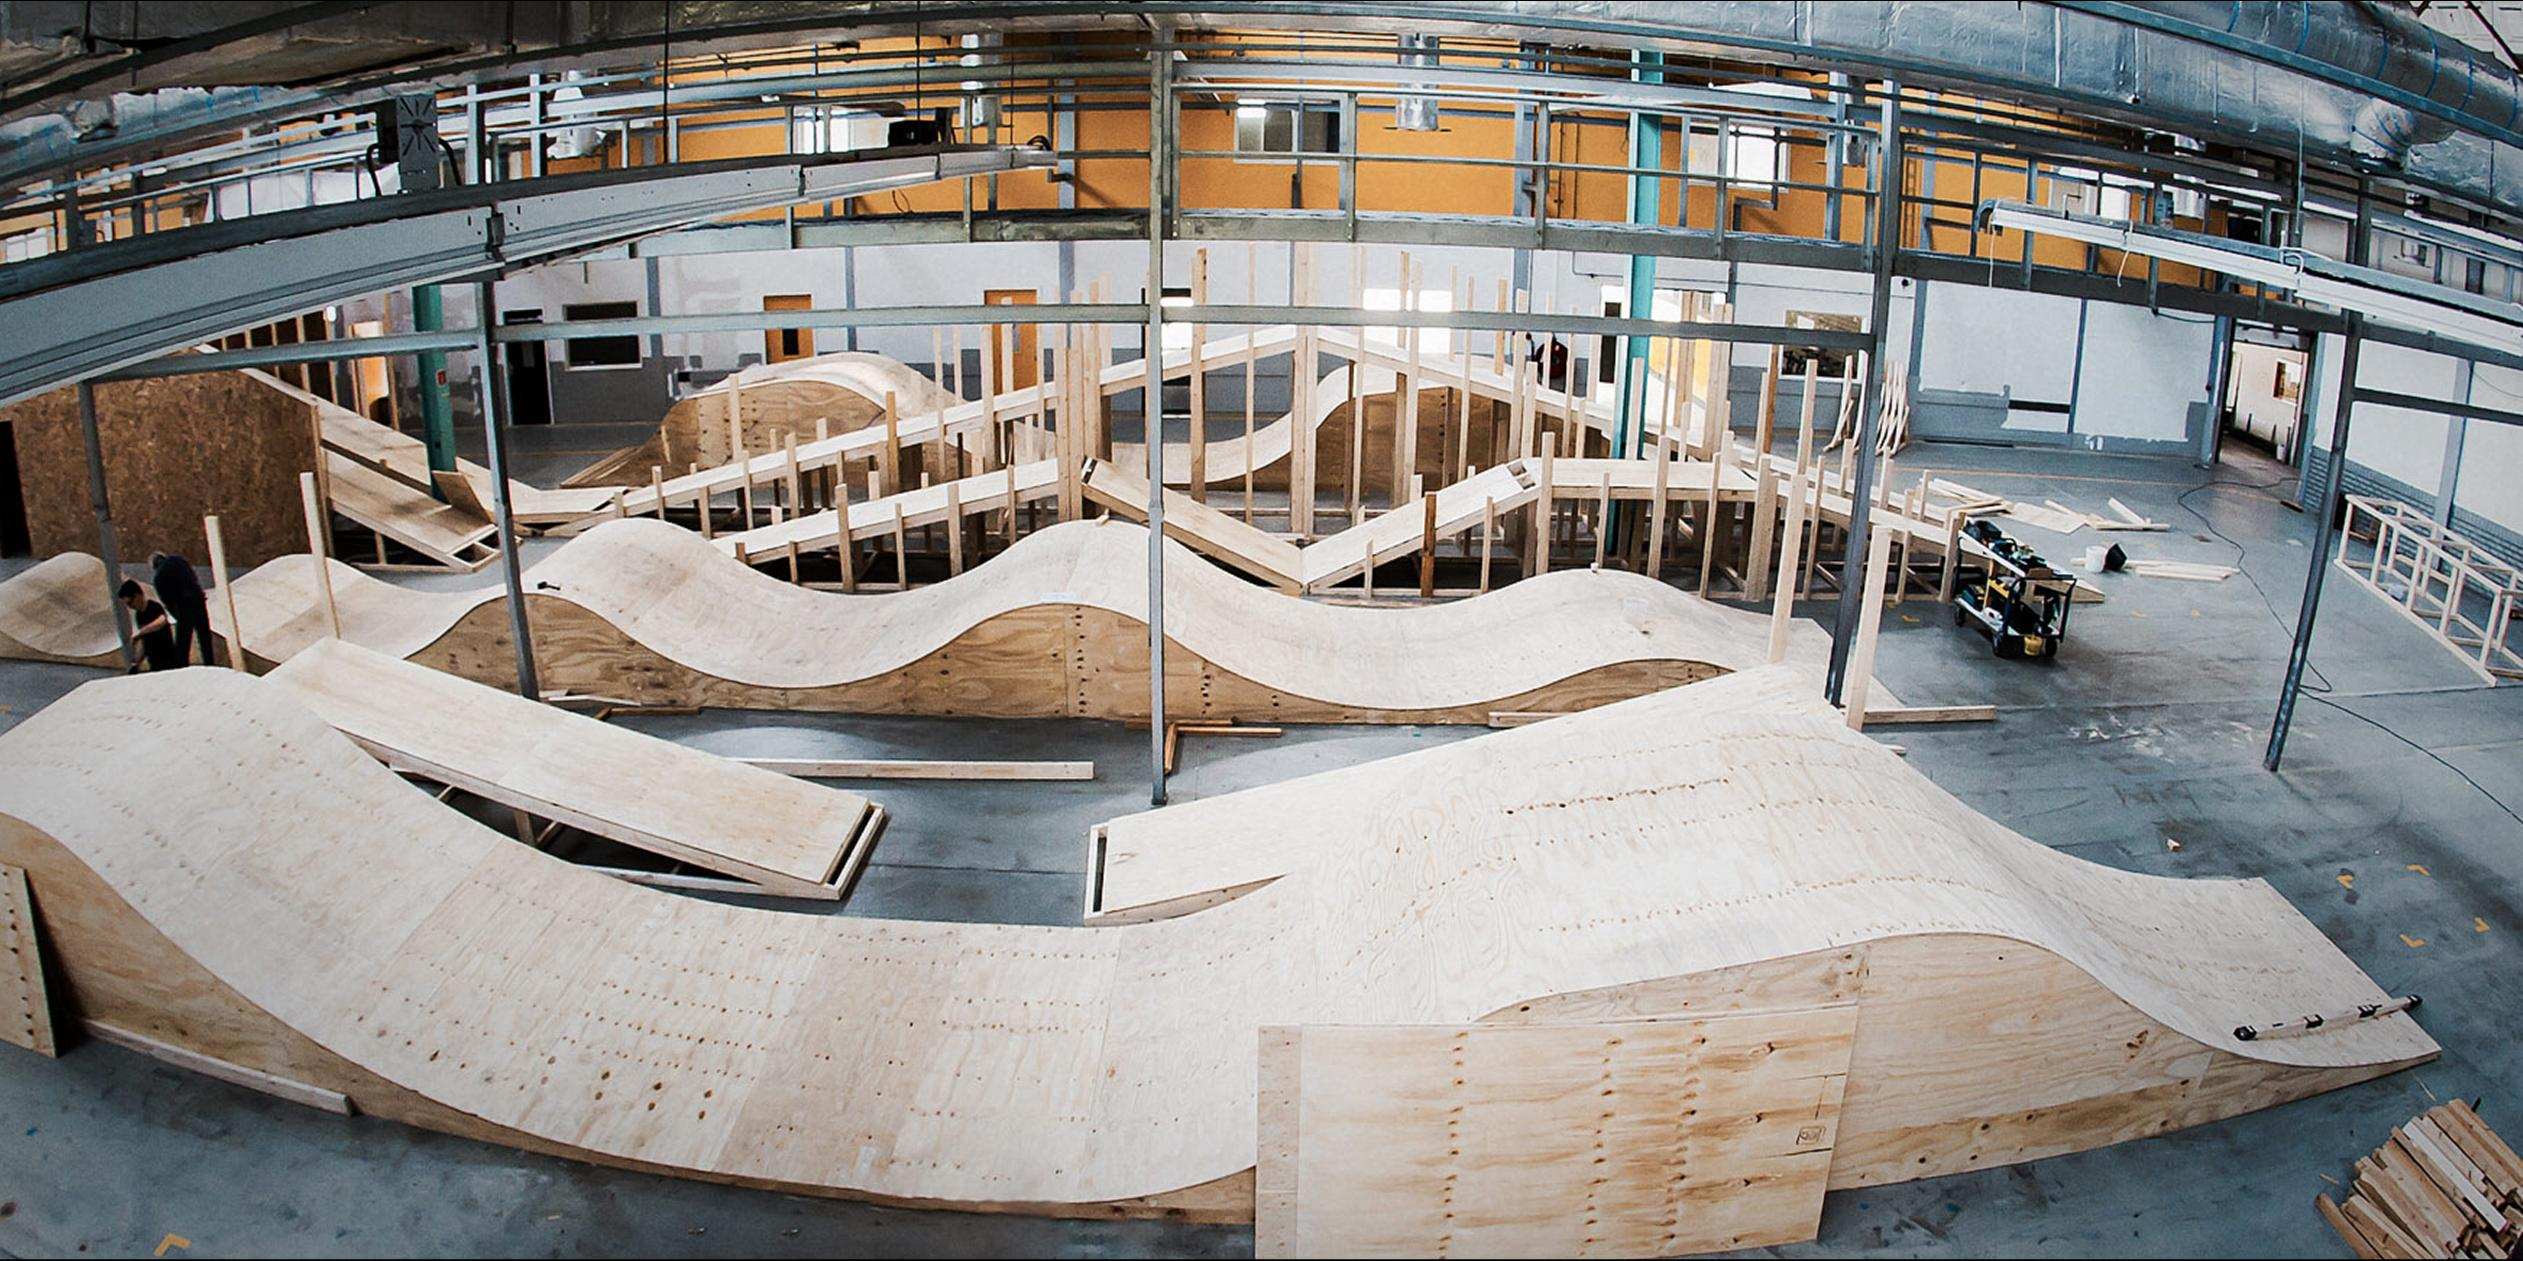 A work by Does - Wood 15 sittard the netherlands warehouse